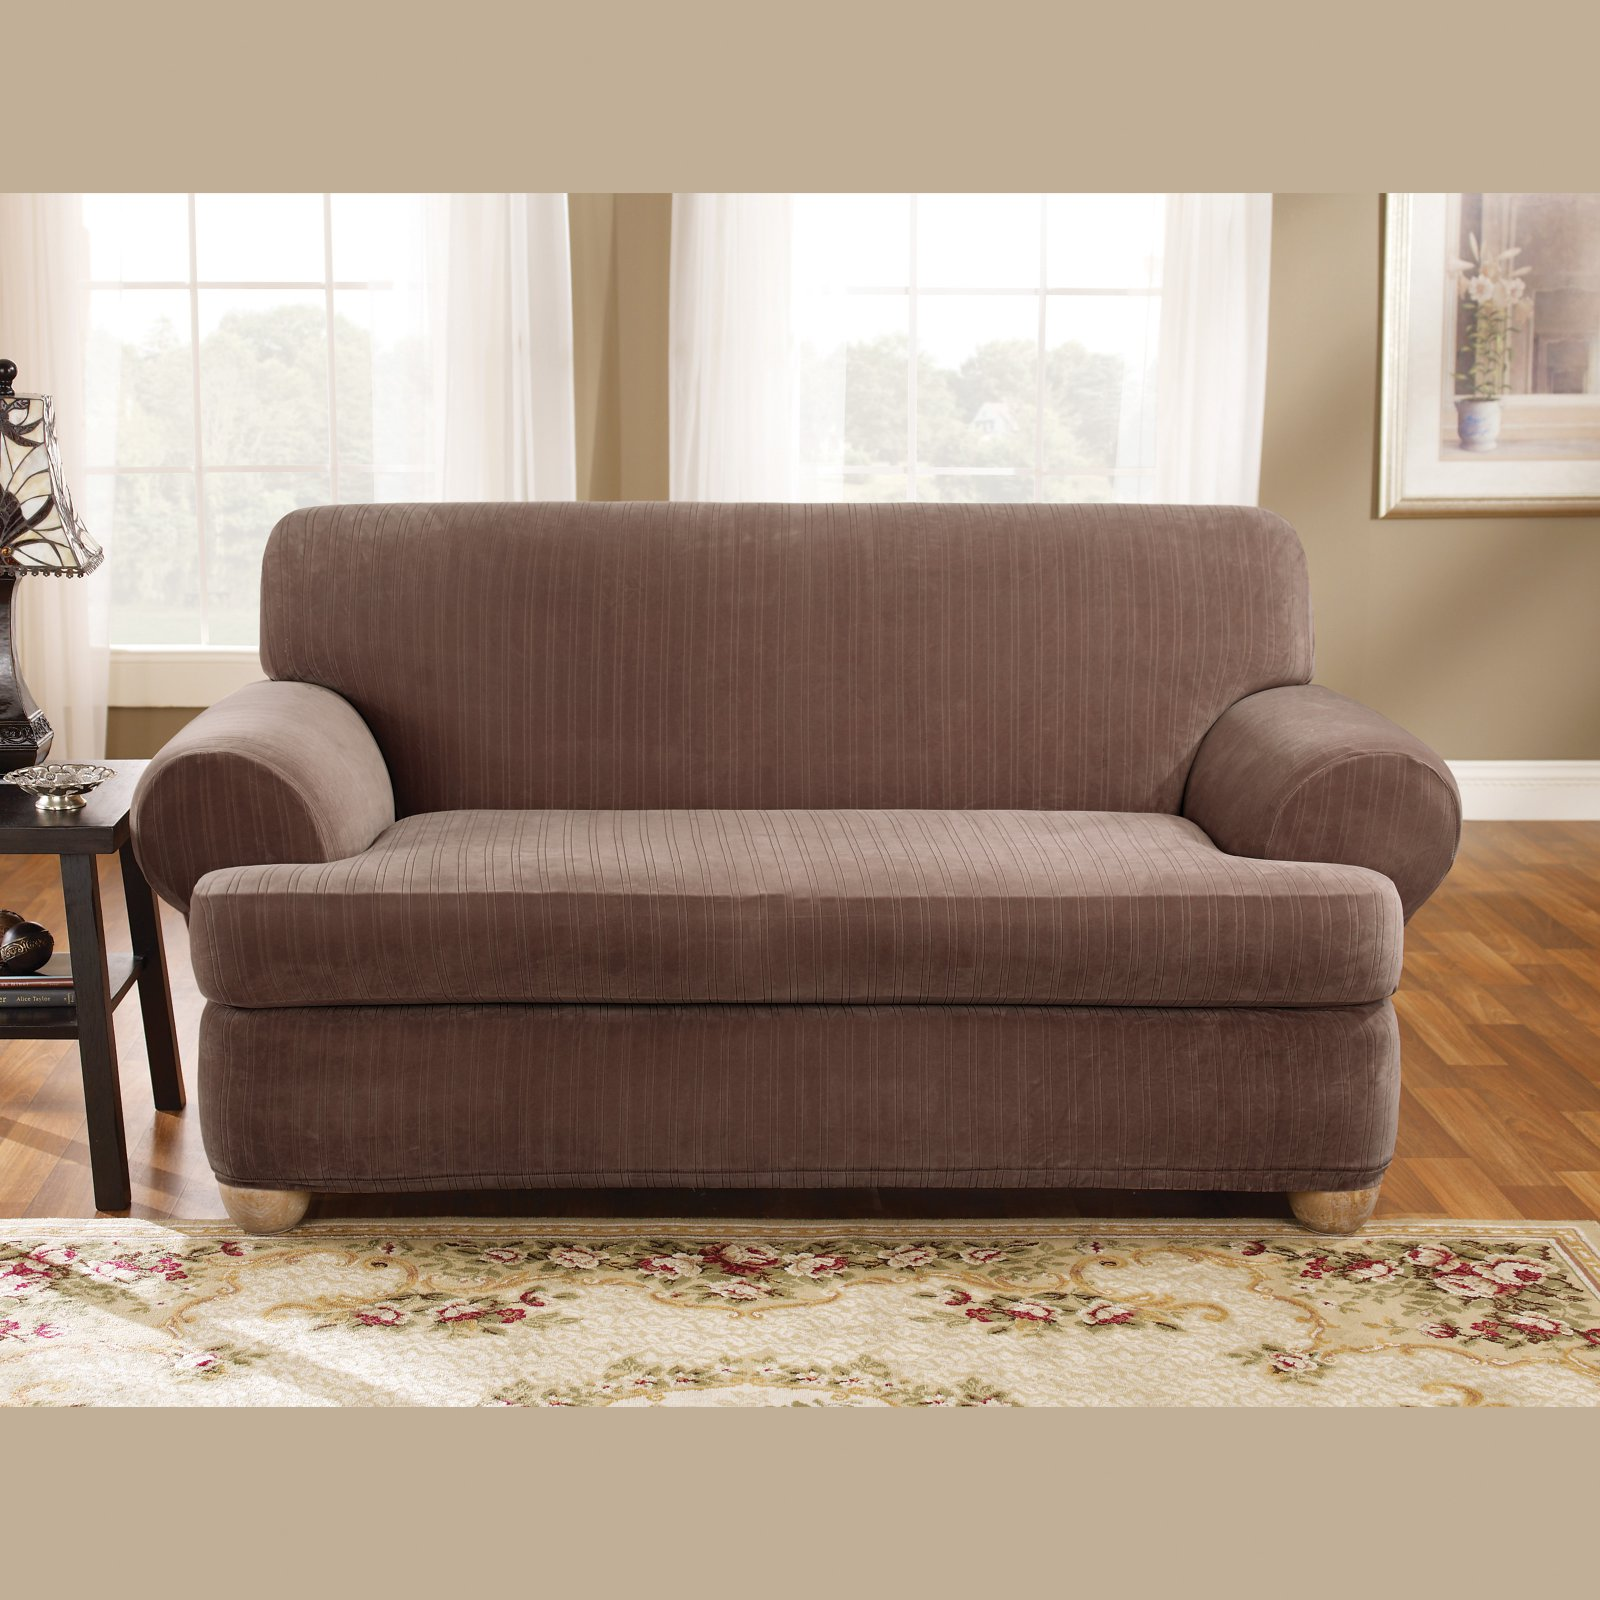 Ordinaire Sure Fit Stretch Pinstripe T Cushion Two Piece Sofa Slipcover   Walmart.com